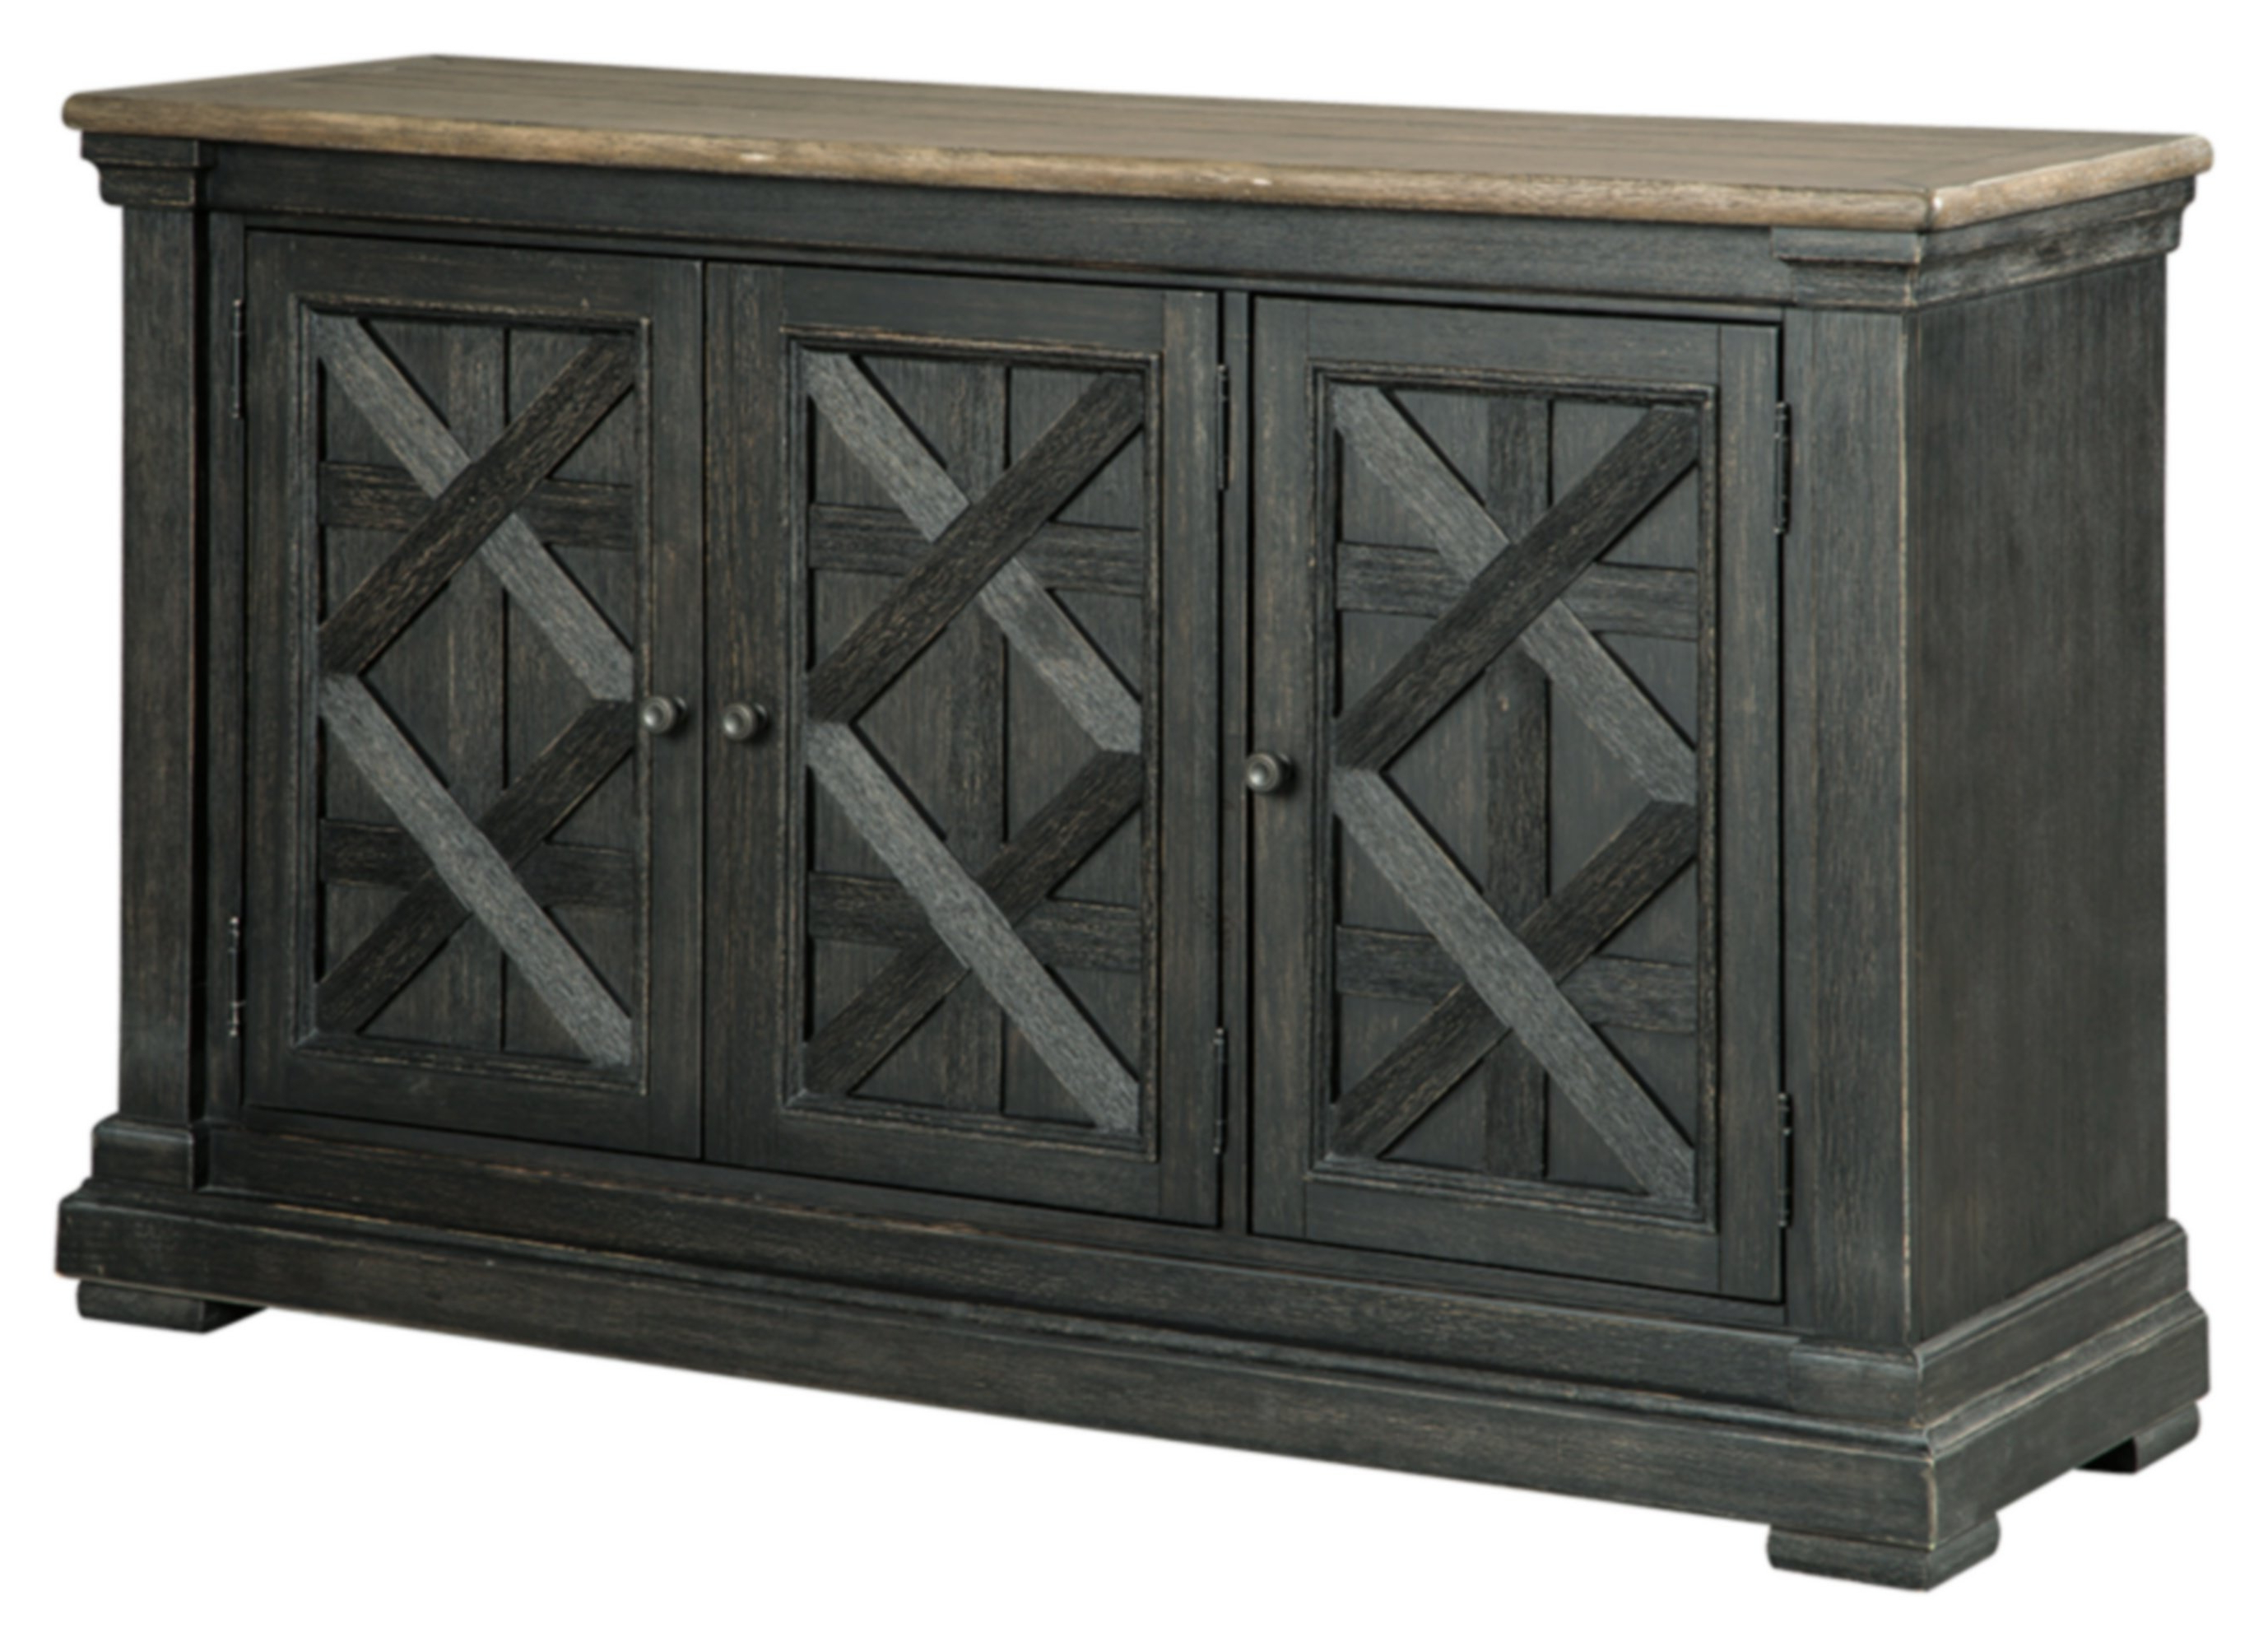 2019 Canora Grey Ventanas Sideboard Intended For Massillon Sideboards (View 2 of 20)